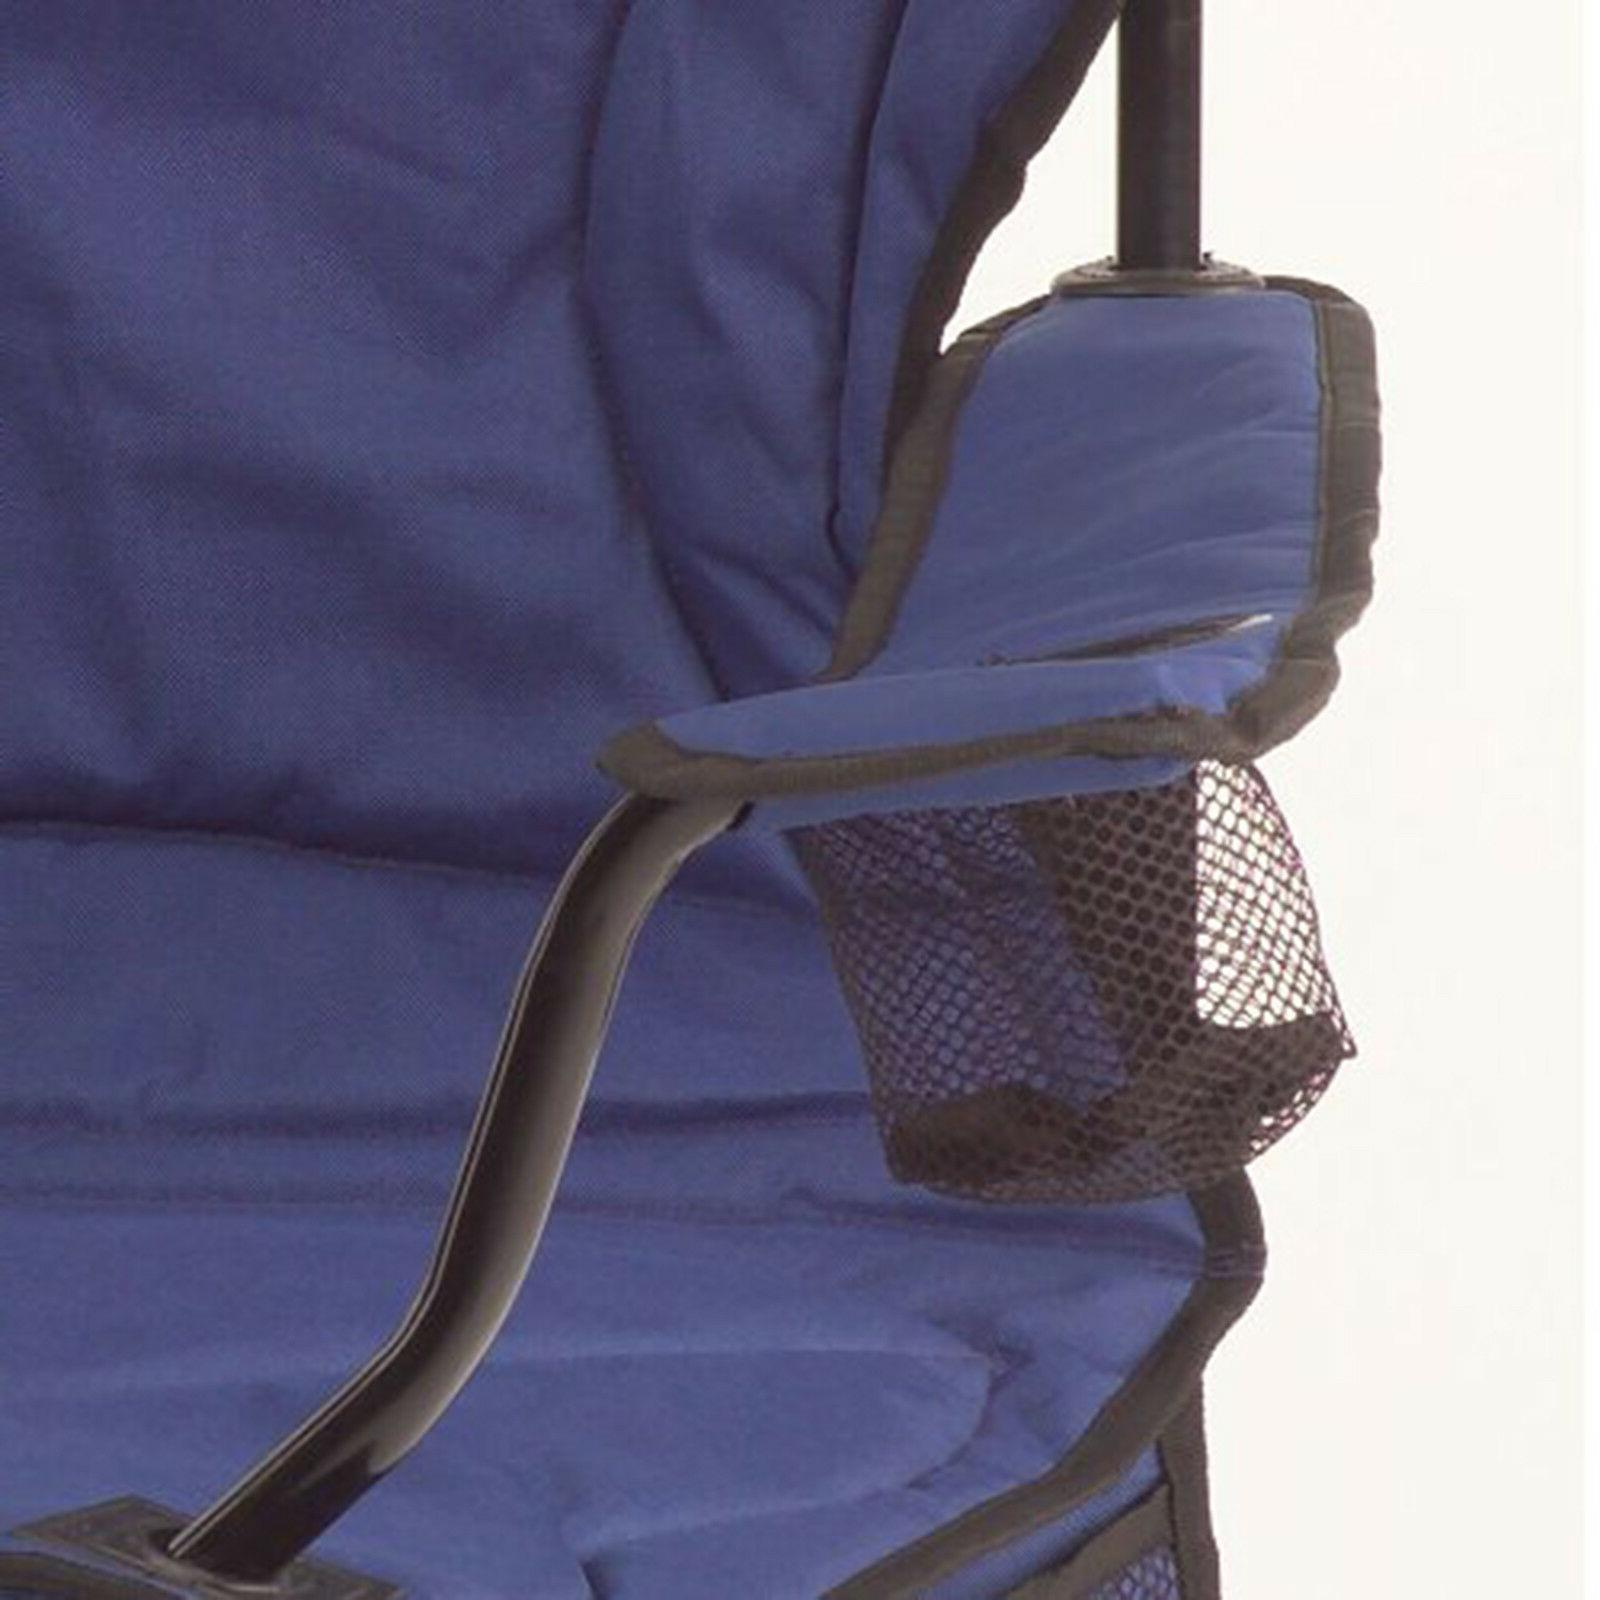 Heavy Oversized Camping Folding Chair Seat Holder